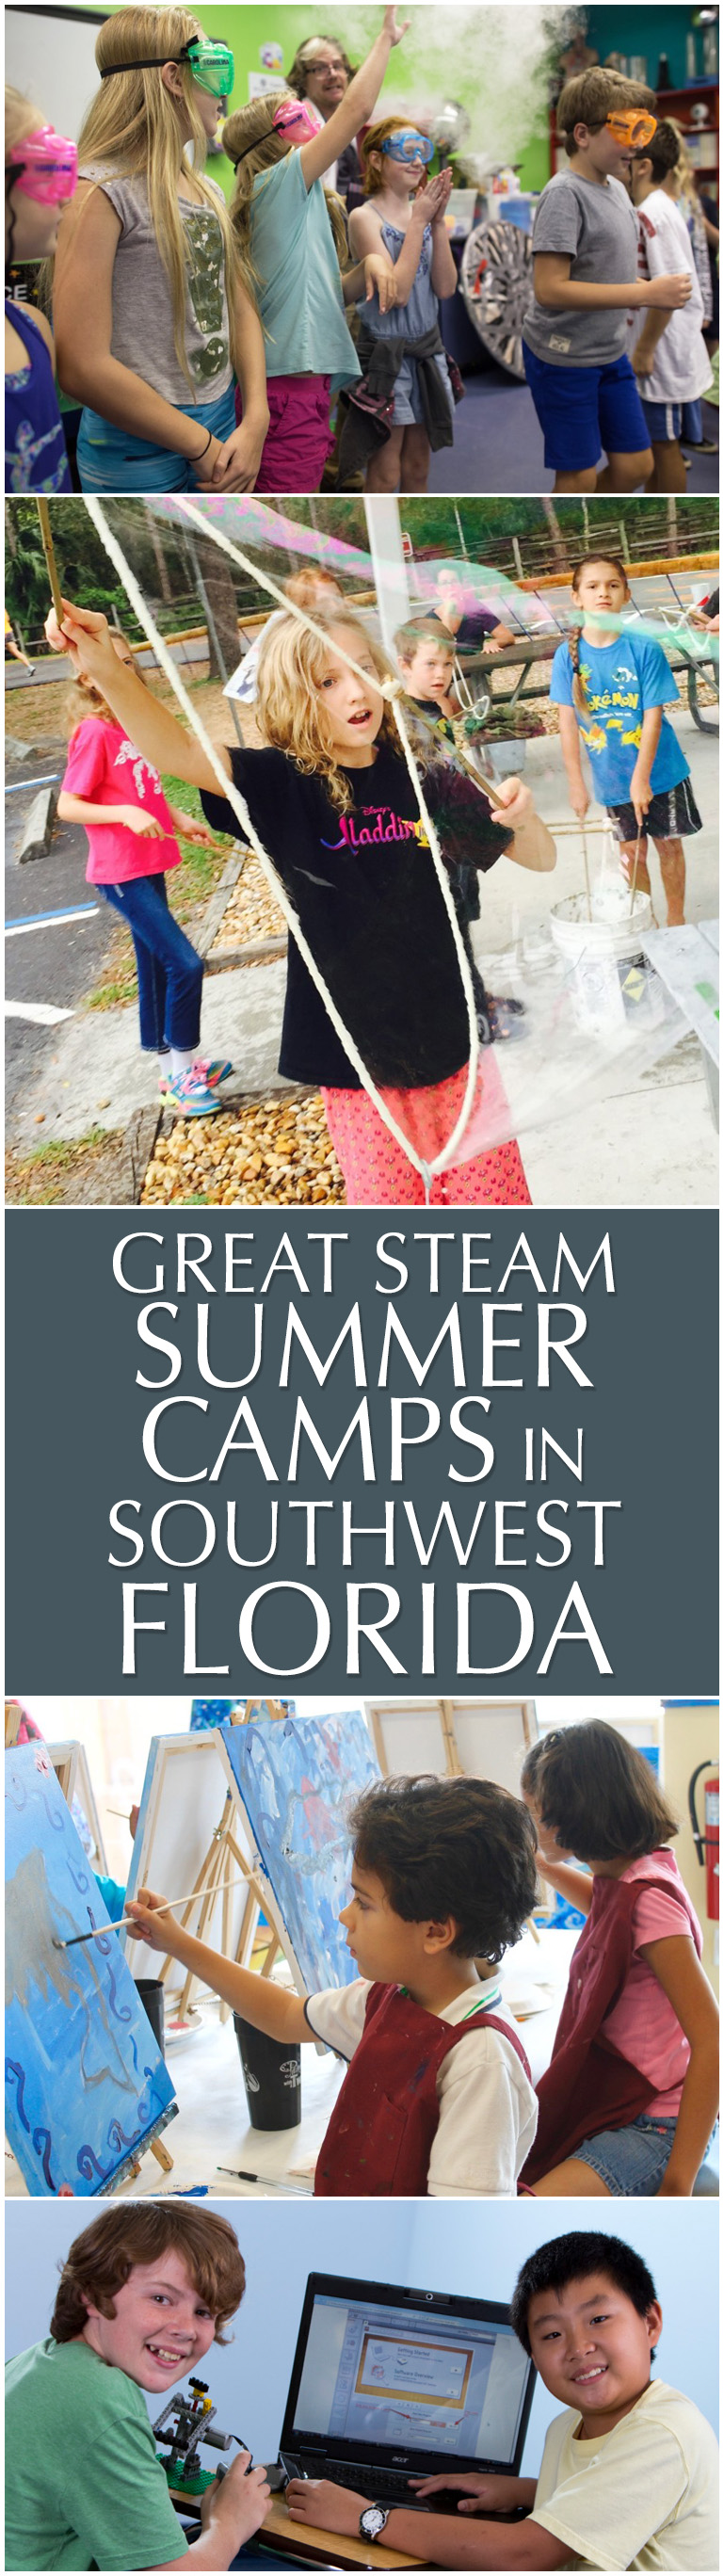 Great STEAM summer camps in Southwest Florida